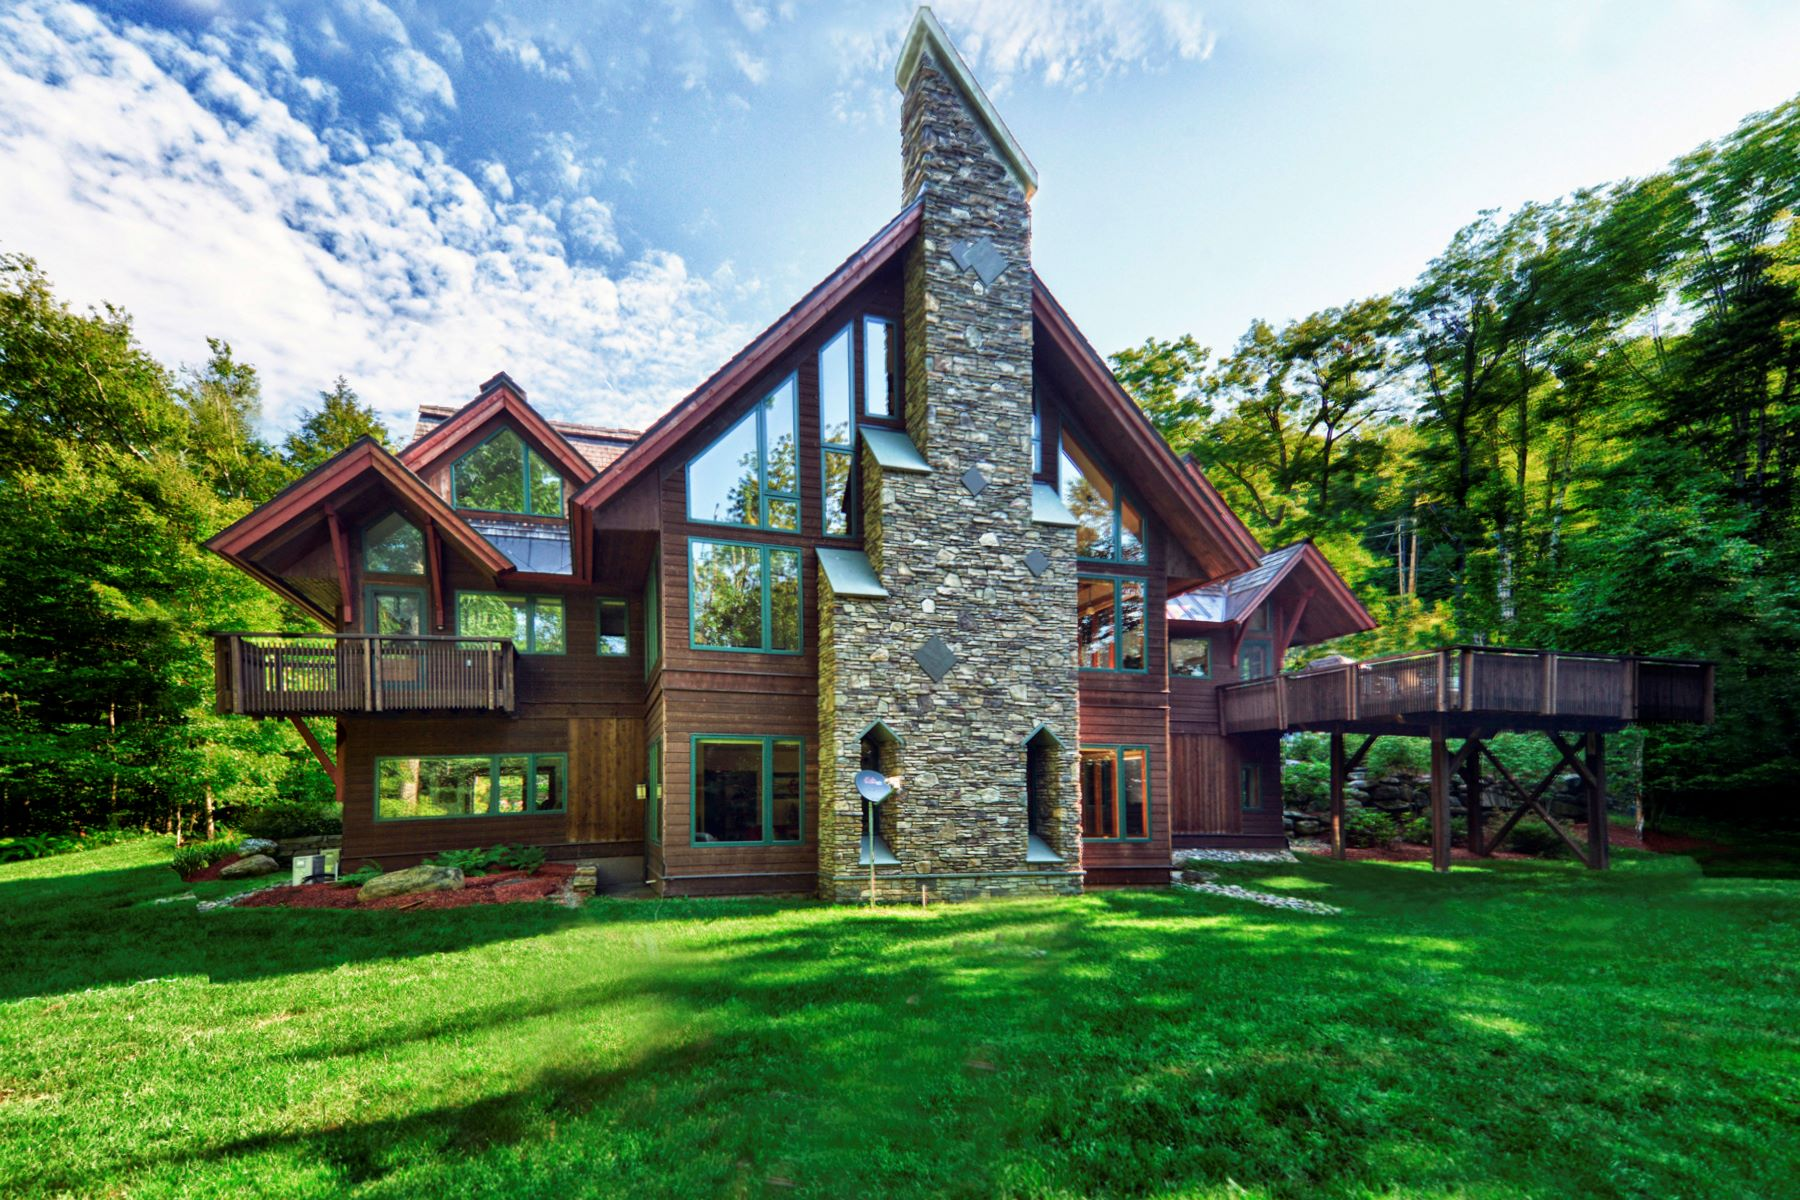 Single Family Home for Sale at Simply one of the most beautiful homes in Vermont! 40 East Ash Plymouth, Vermont, 05056 United States